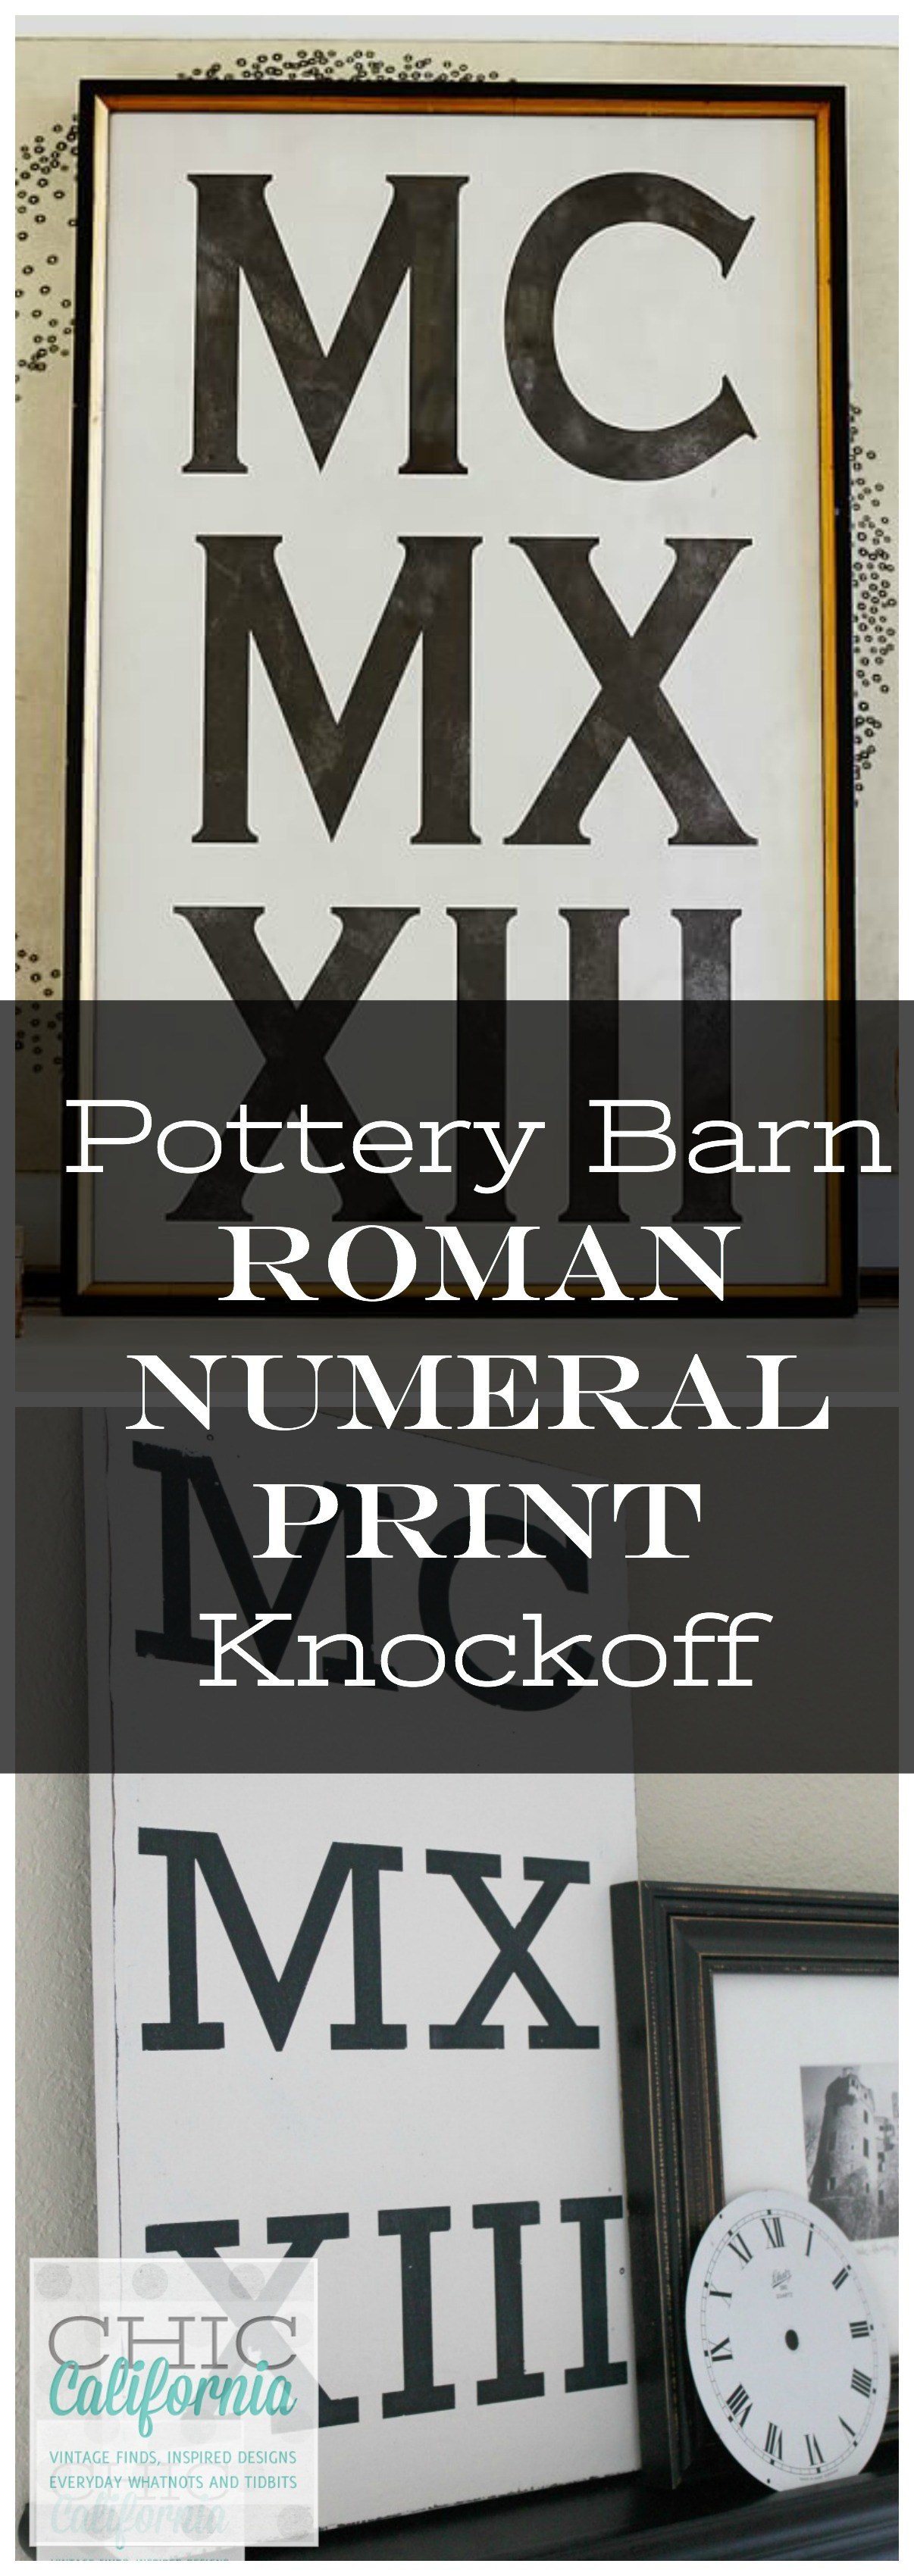 Pottery Barn Roman Numeral Print Knockoff